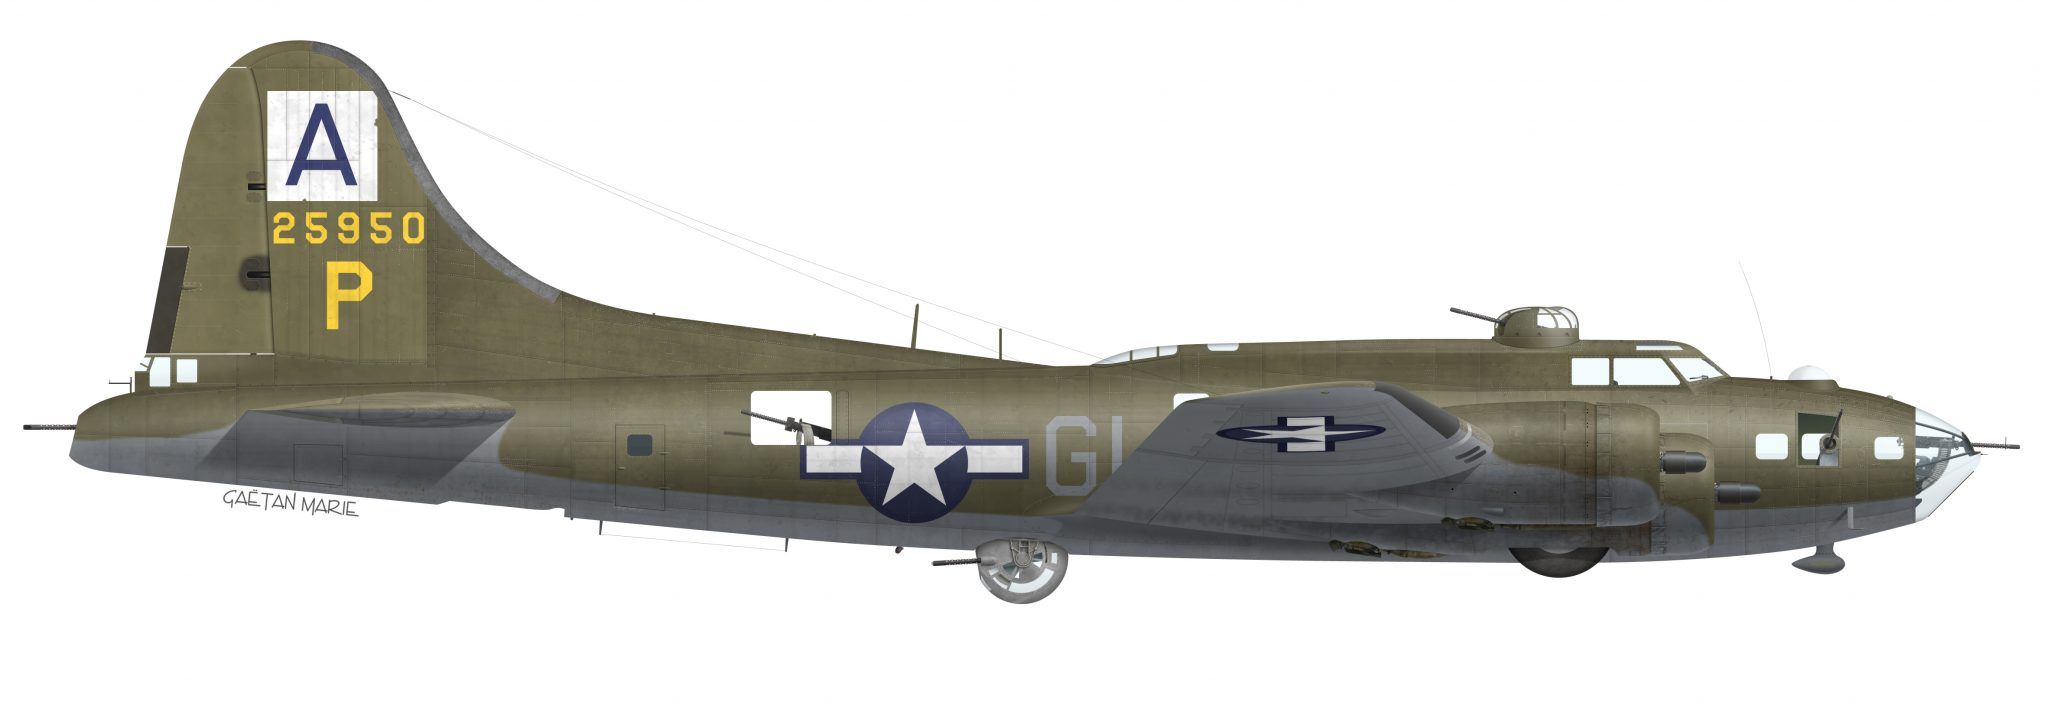 USAAF, B-17F-35-VE 42-5950, Peters Pride, 410 BS, 94 BG, 1943